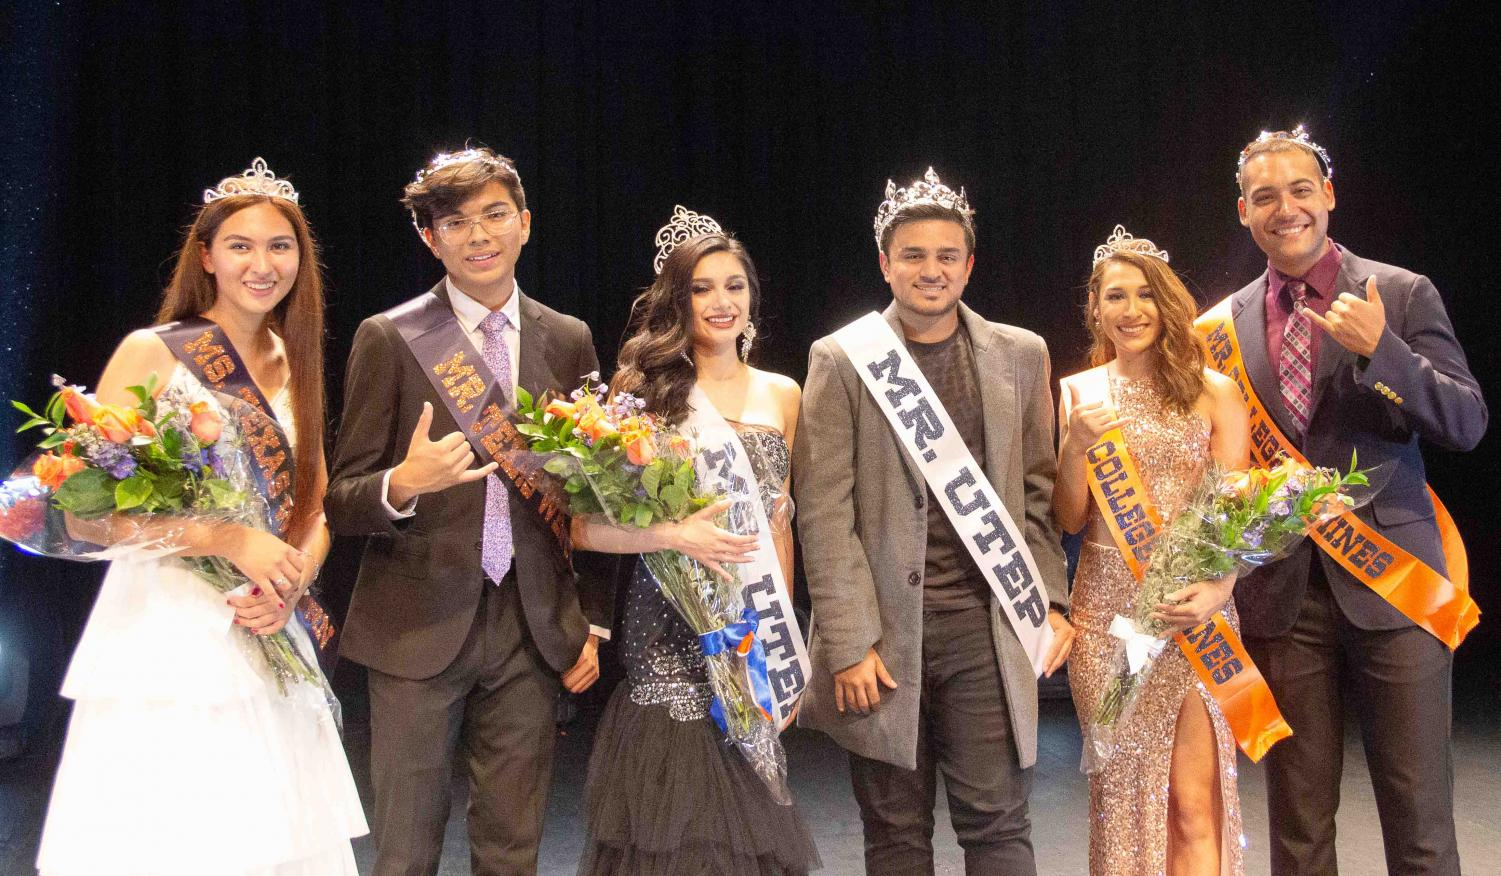 The winners of the 2019 SGA Pageant show.